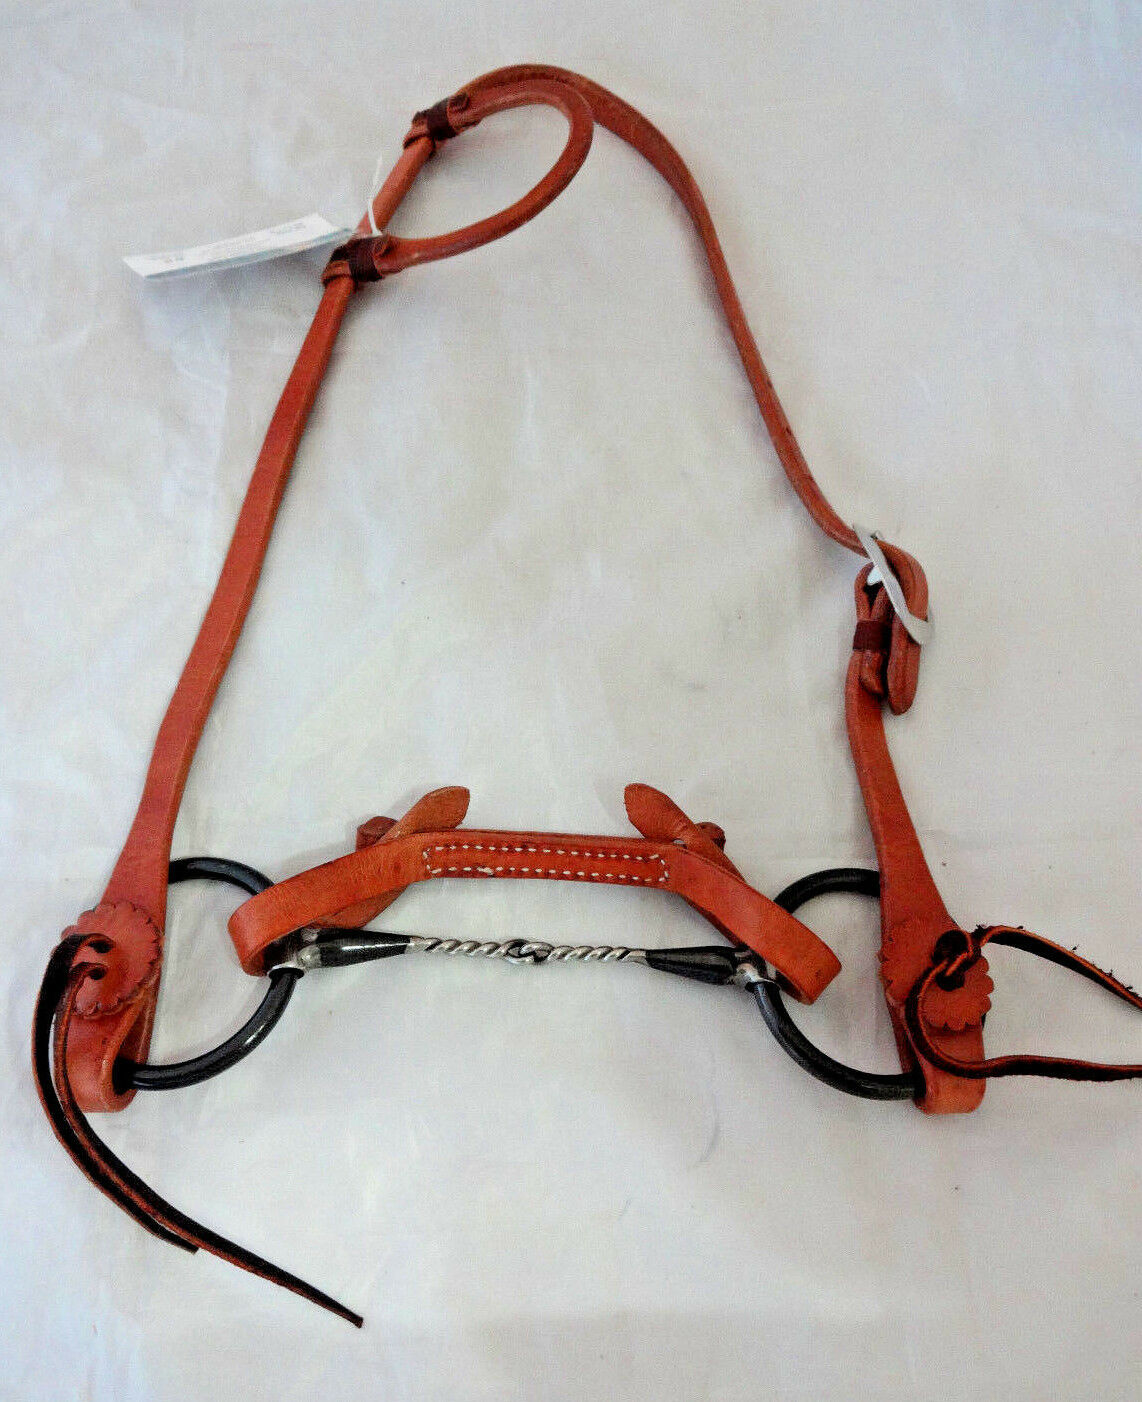 Billy Cook One Ear Harness Leather Horse Bridle Snaffle  Iron Twist Red River Bit  come to choose your own sports style